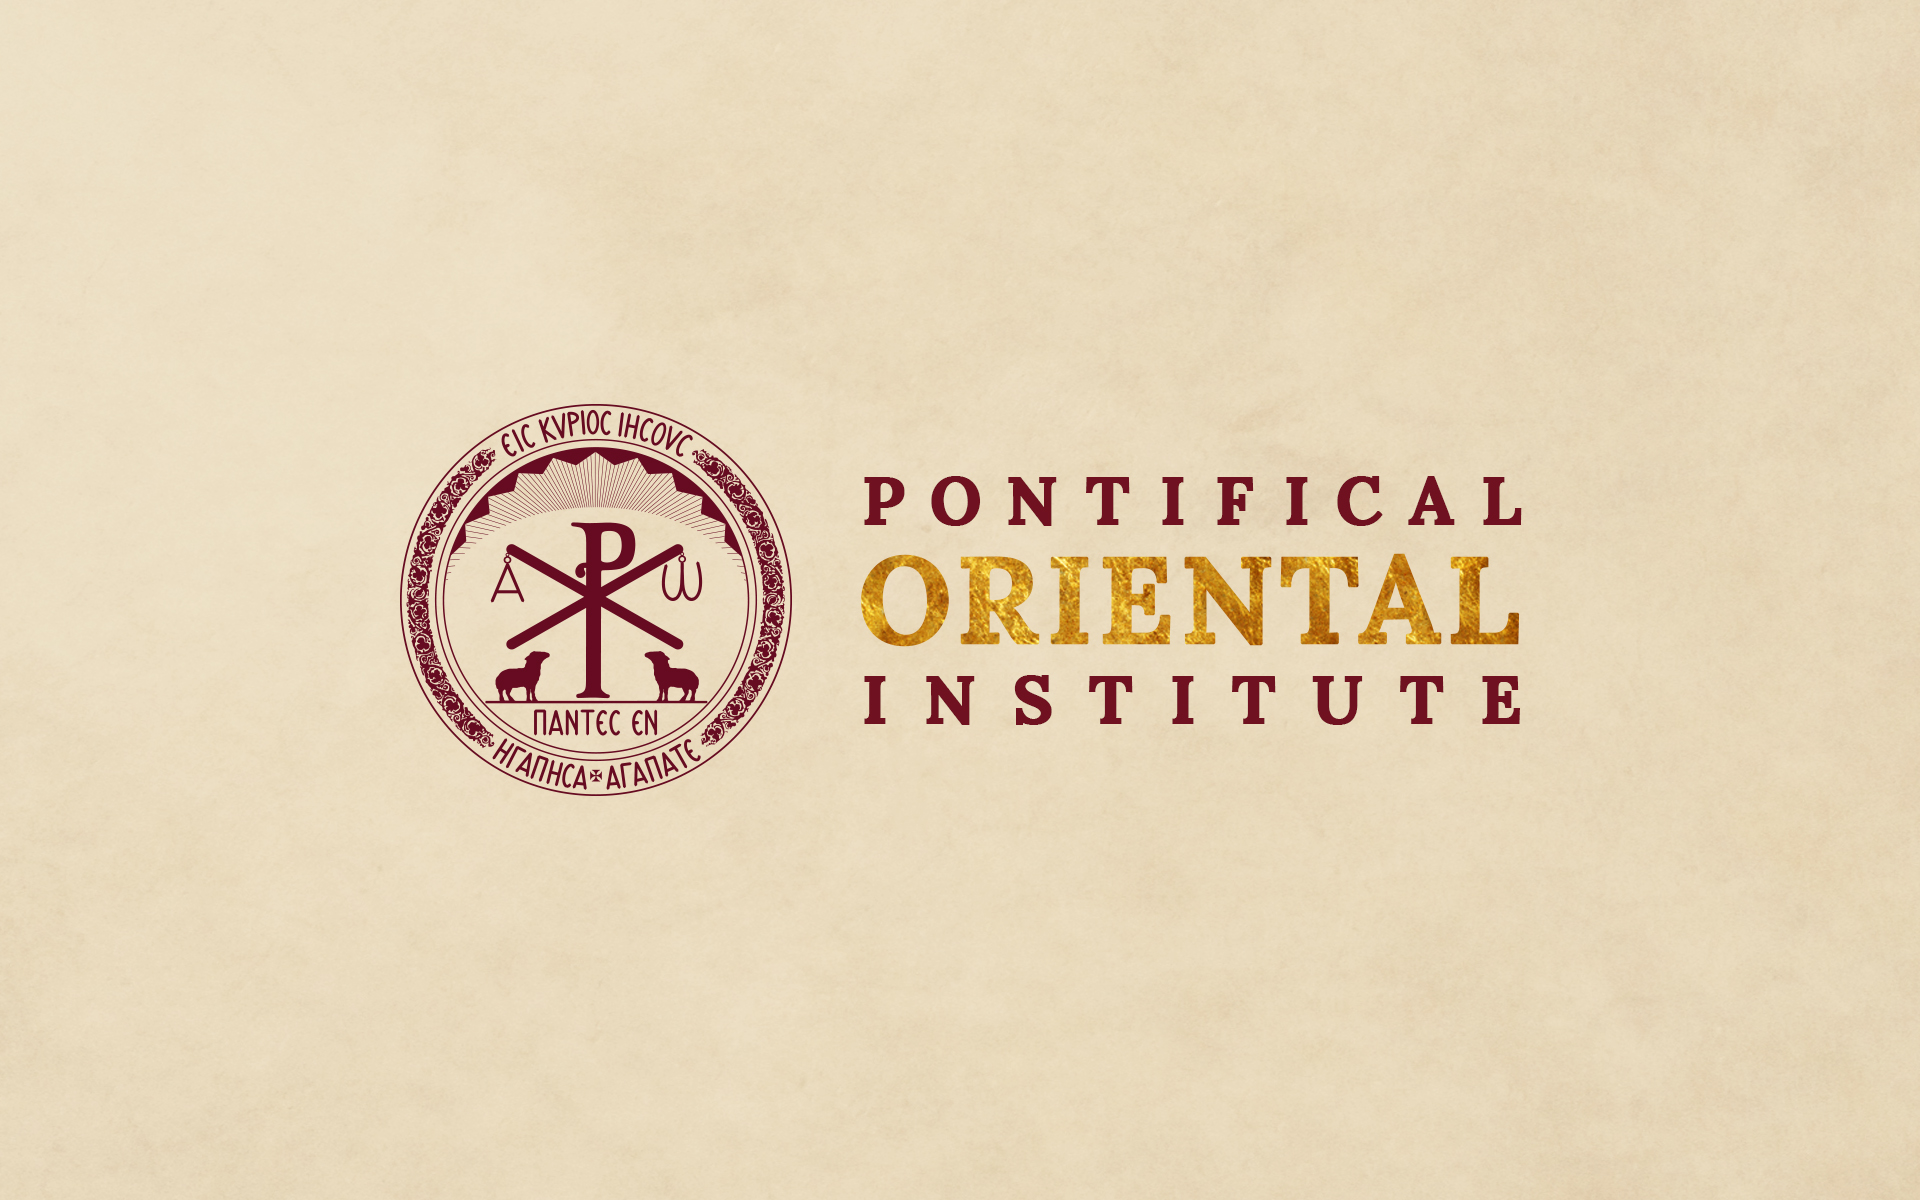 The Pontifical Oriental Institute logo